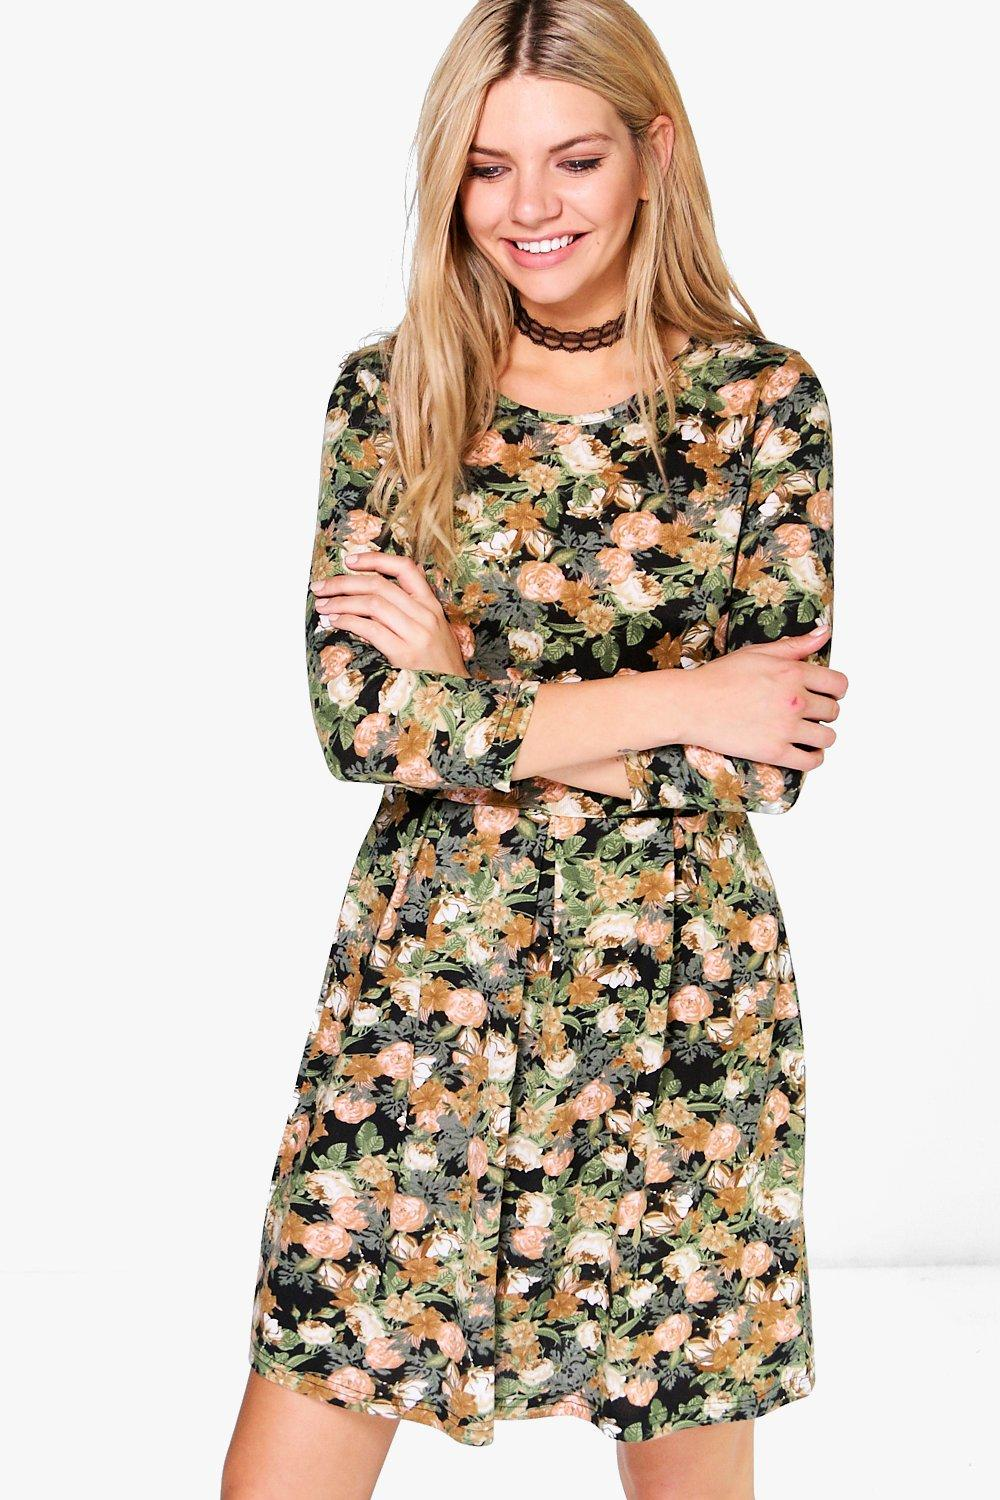 Maura Brushed Knit Floral Skater Dress